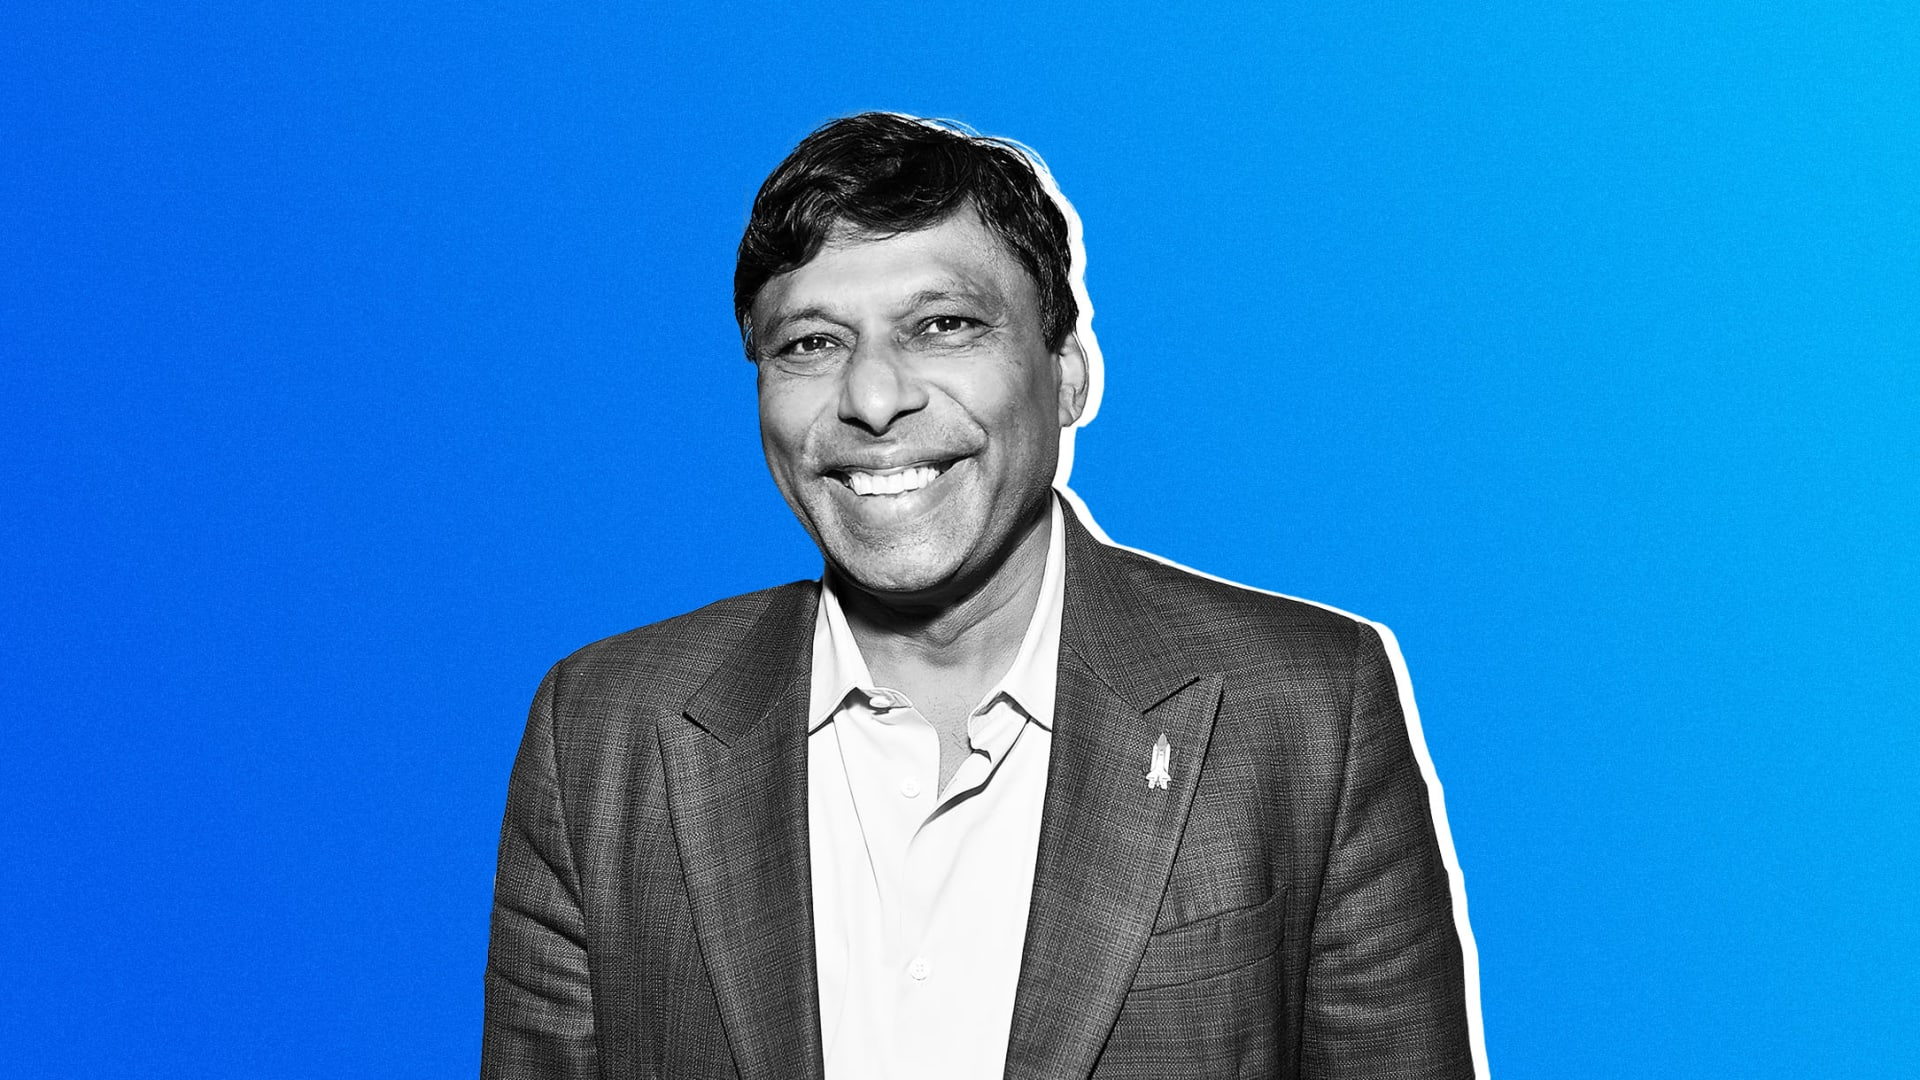 For Naveen Jain, the Big Problems Are the Draw